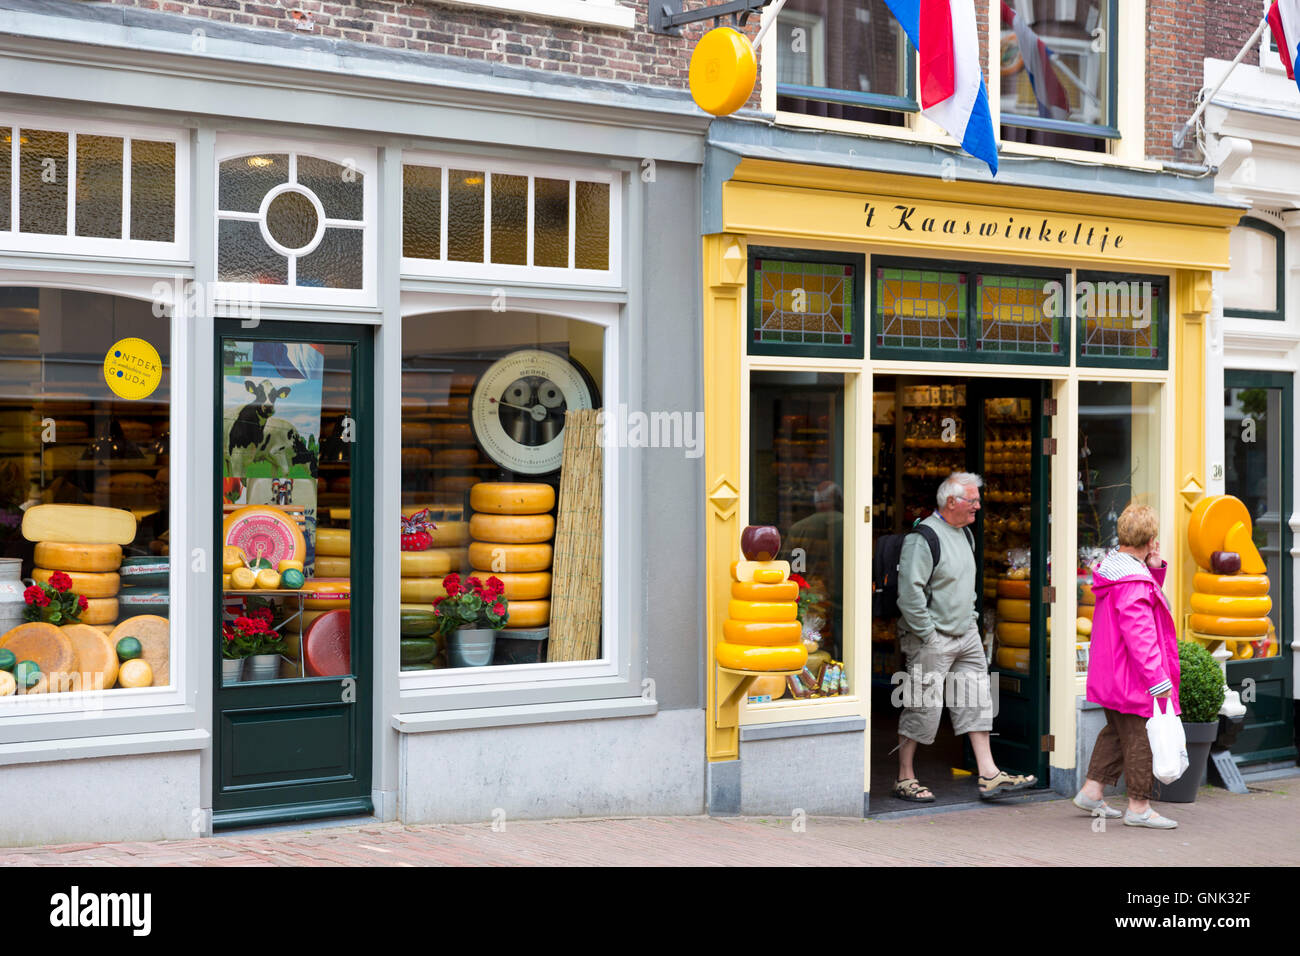 Shoppers and shop front frontage of cheese shop 't Kaaswinkeltje in Lange Tiendeweg Gouda, Holland - Stock Image